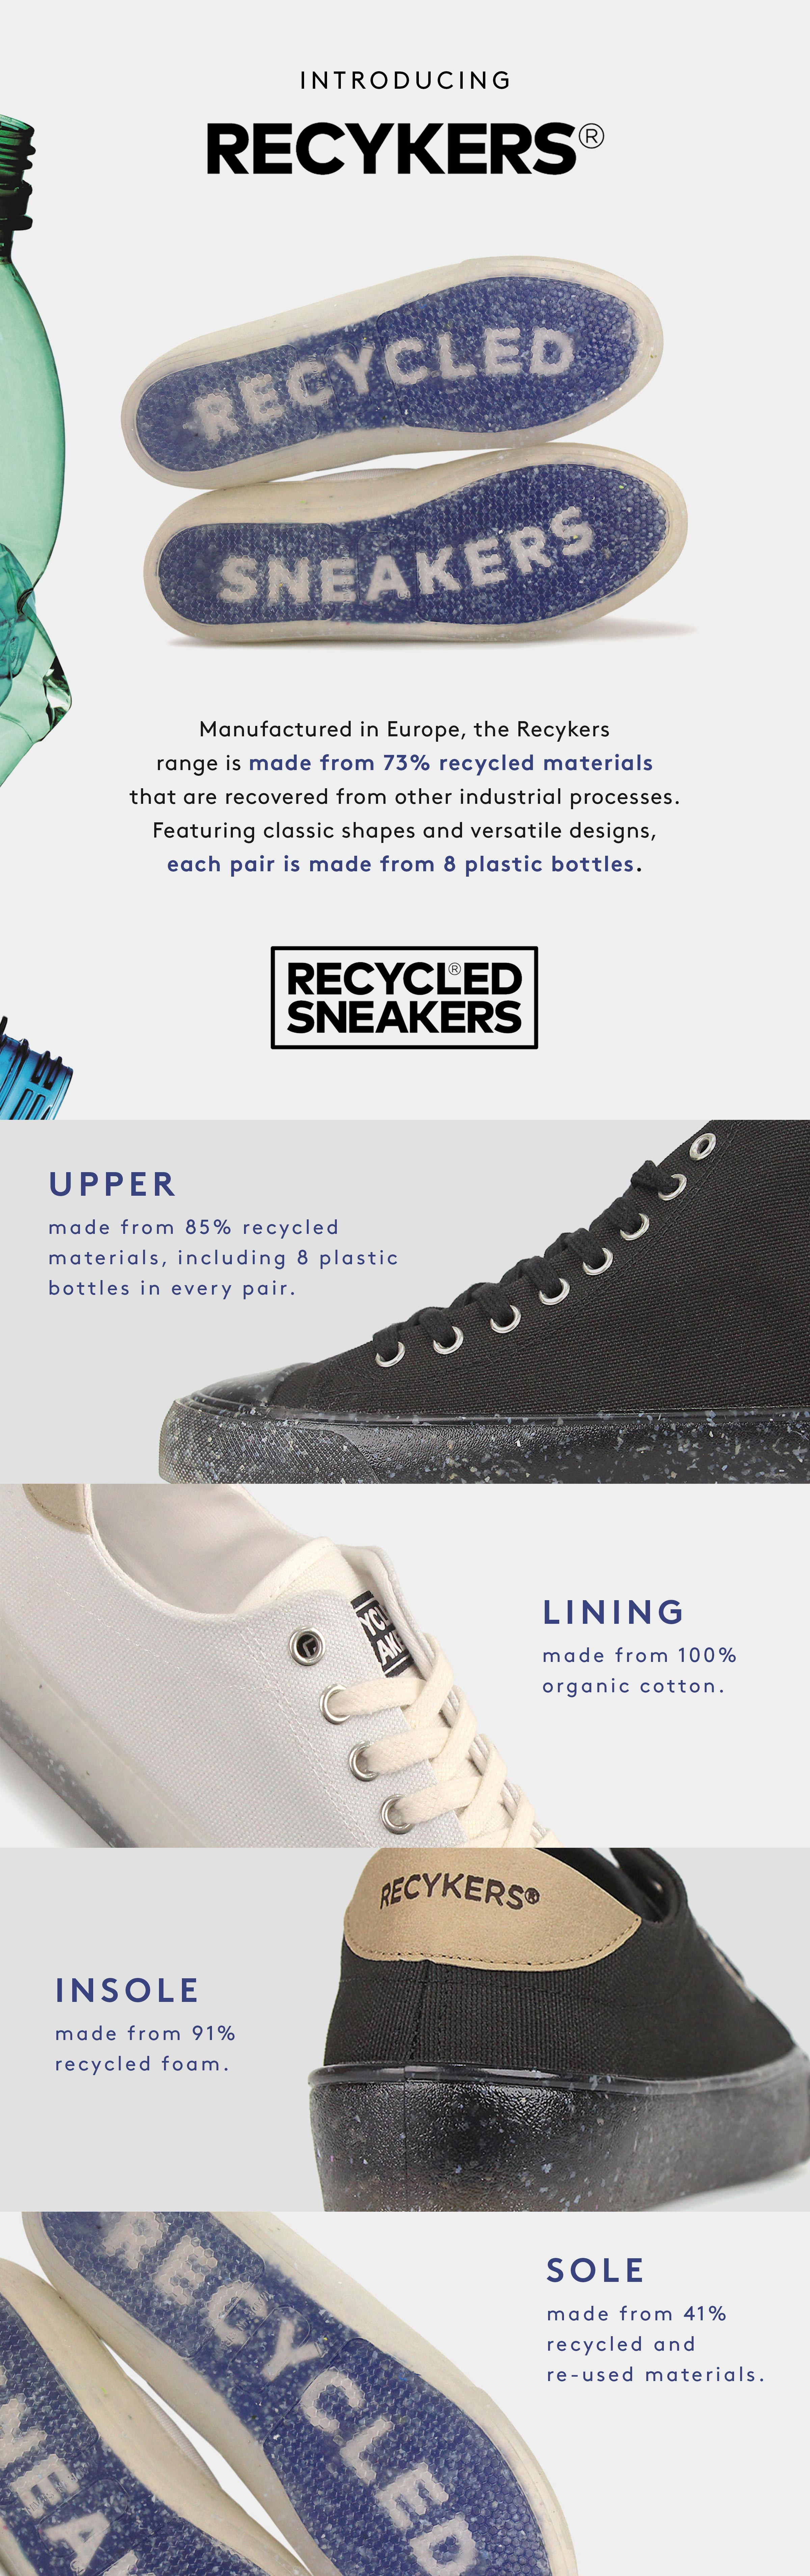 Recykers Recycled Sneakers